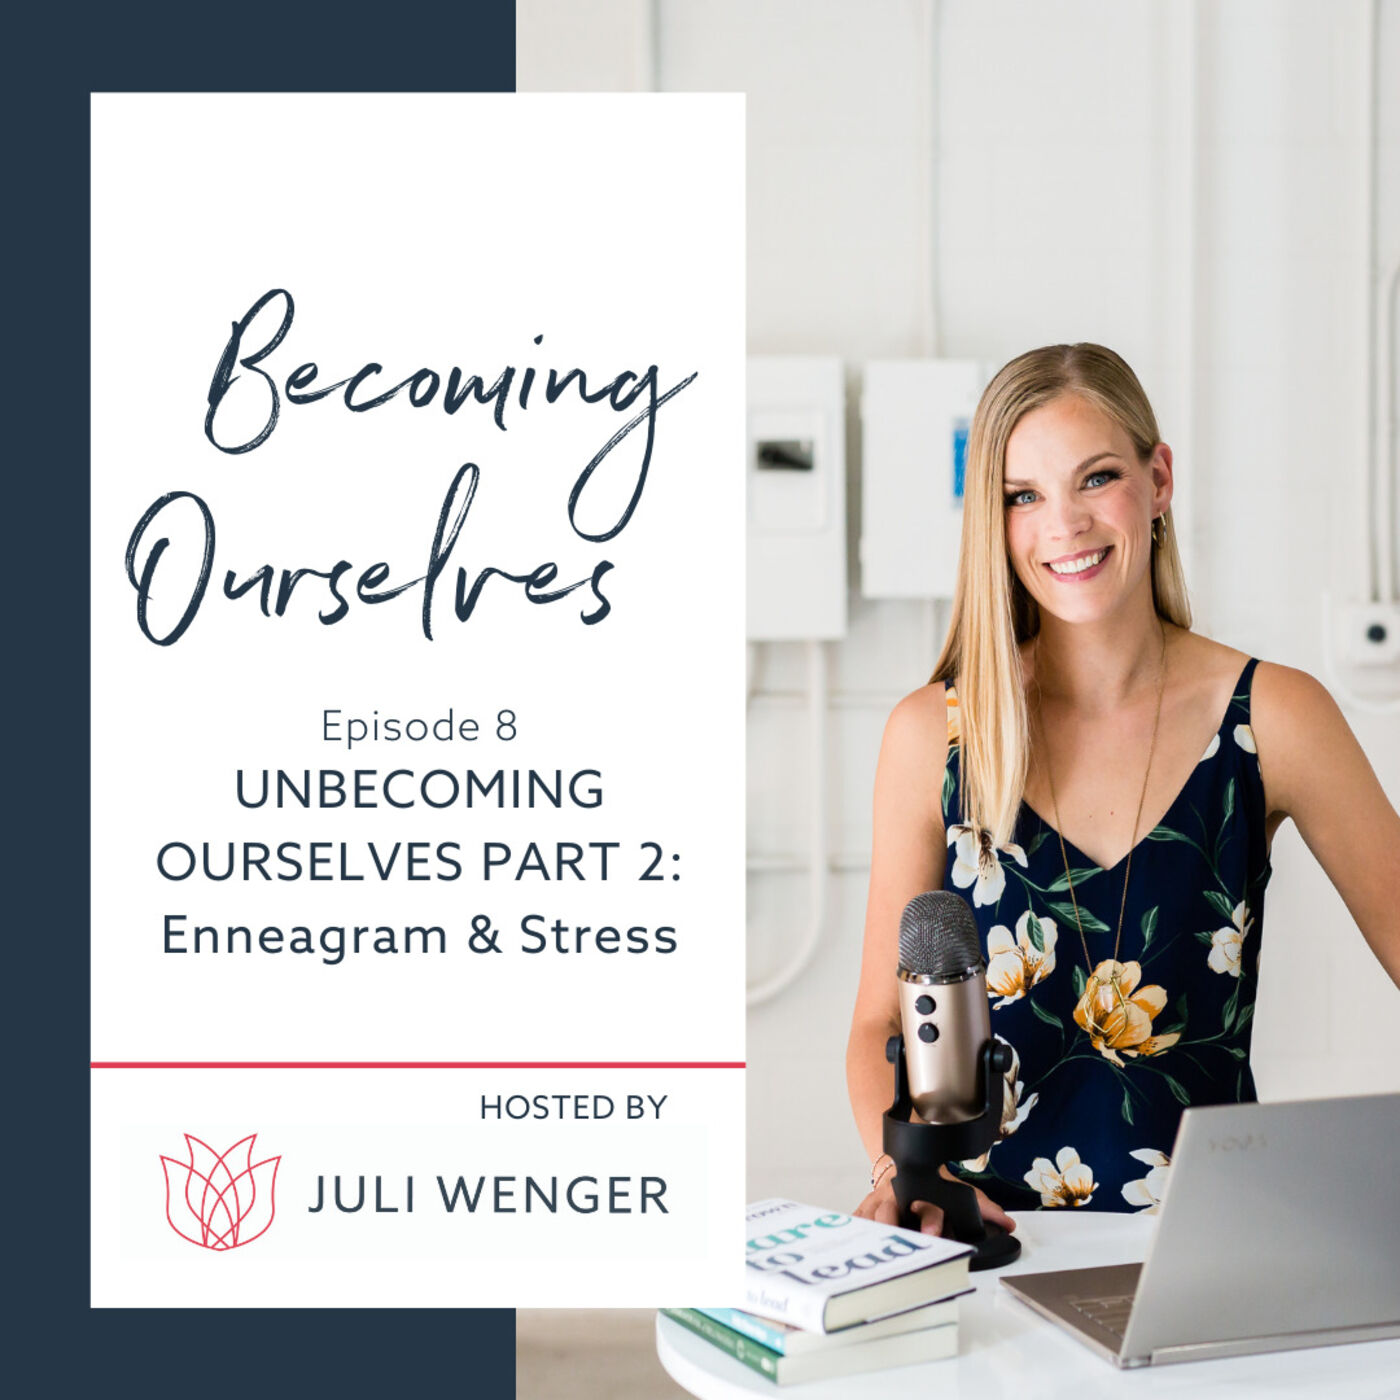 UnBecoming Ourselves Part 2: Enneagram & Stress